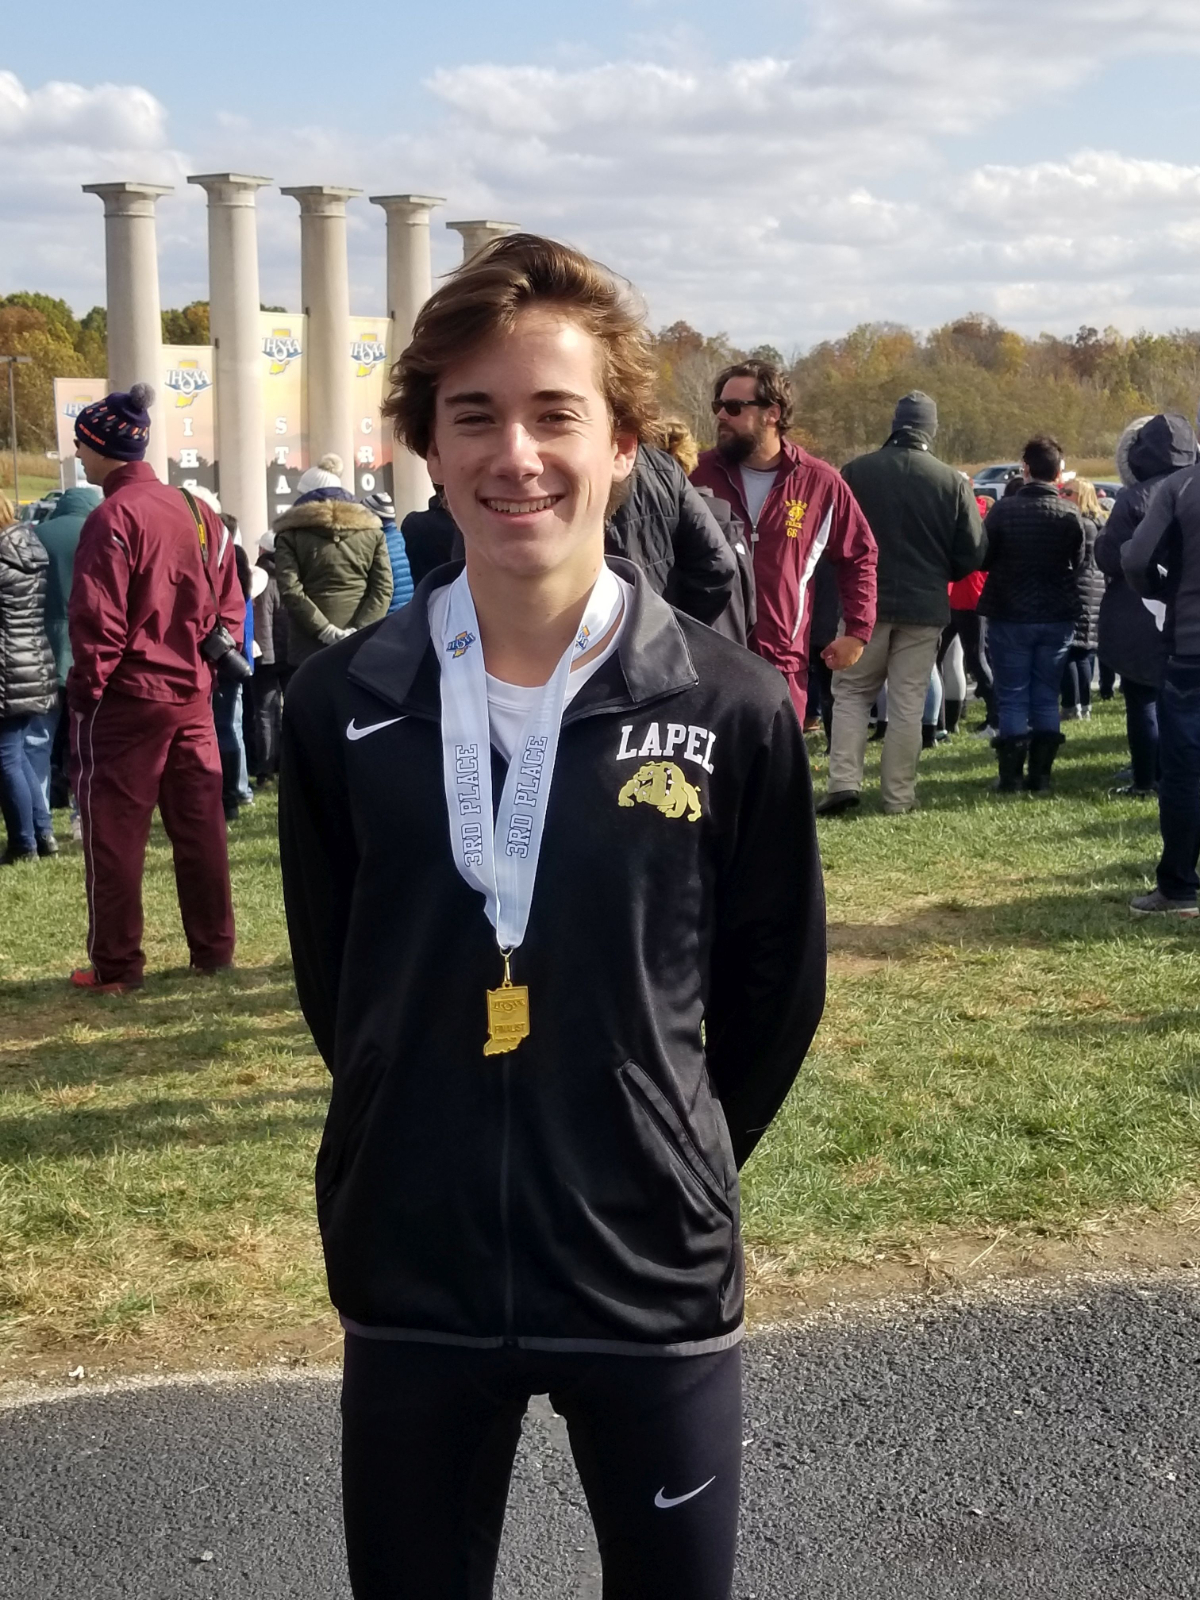 Luke Combs places 3rd place in State Cross Country and wins Mental Attitude Award